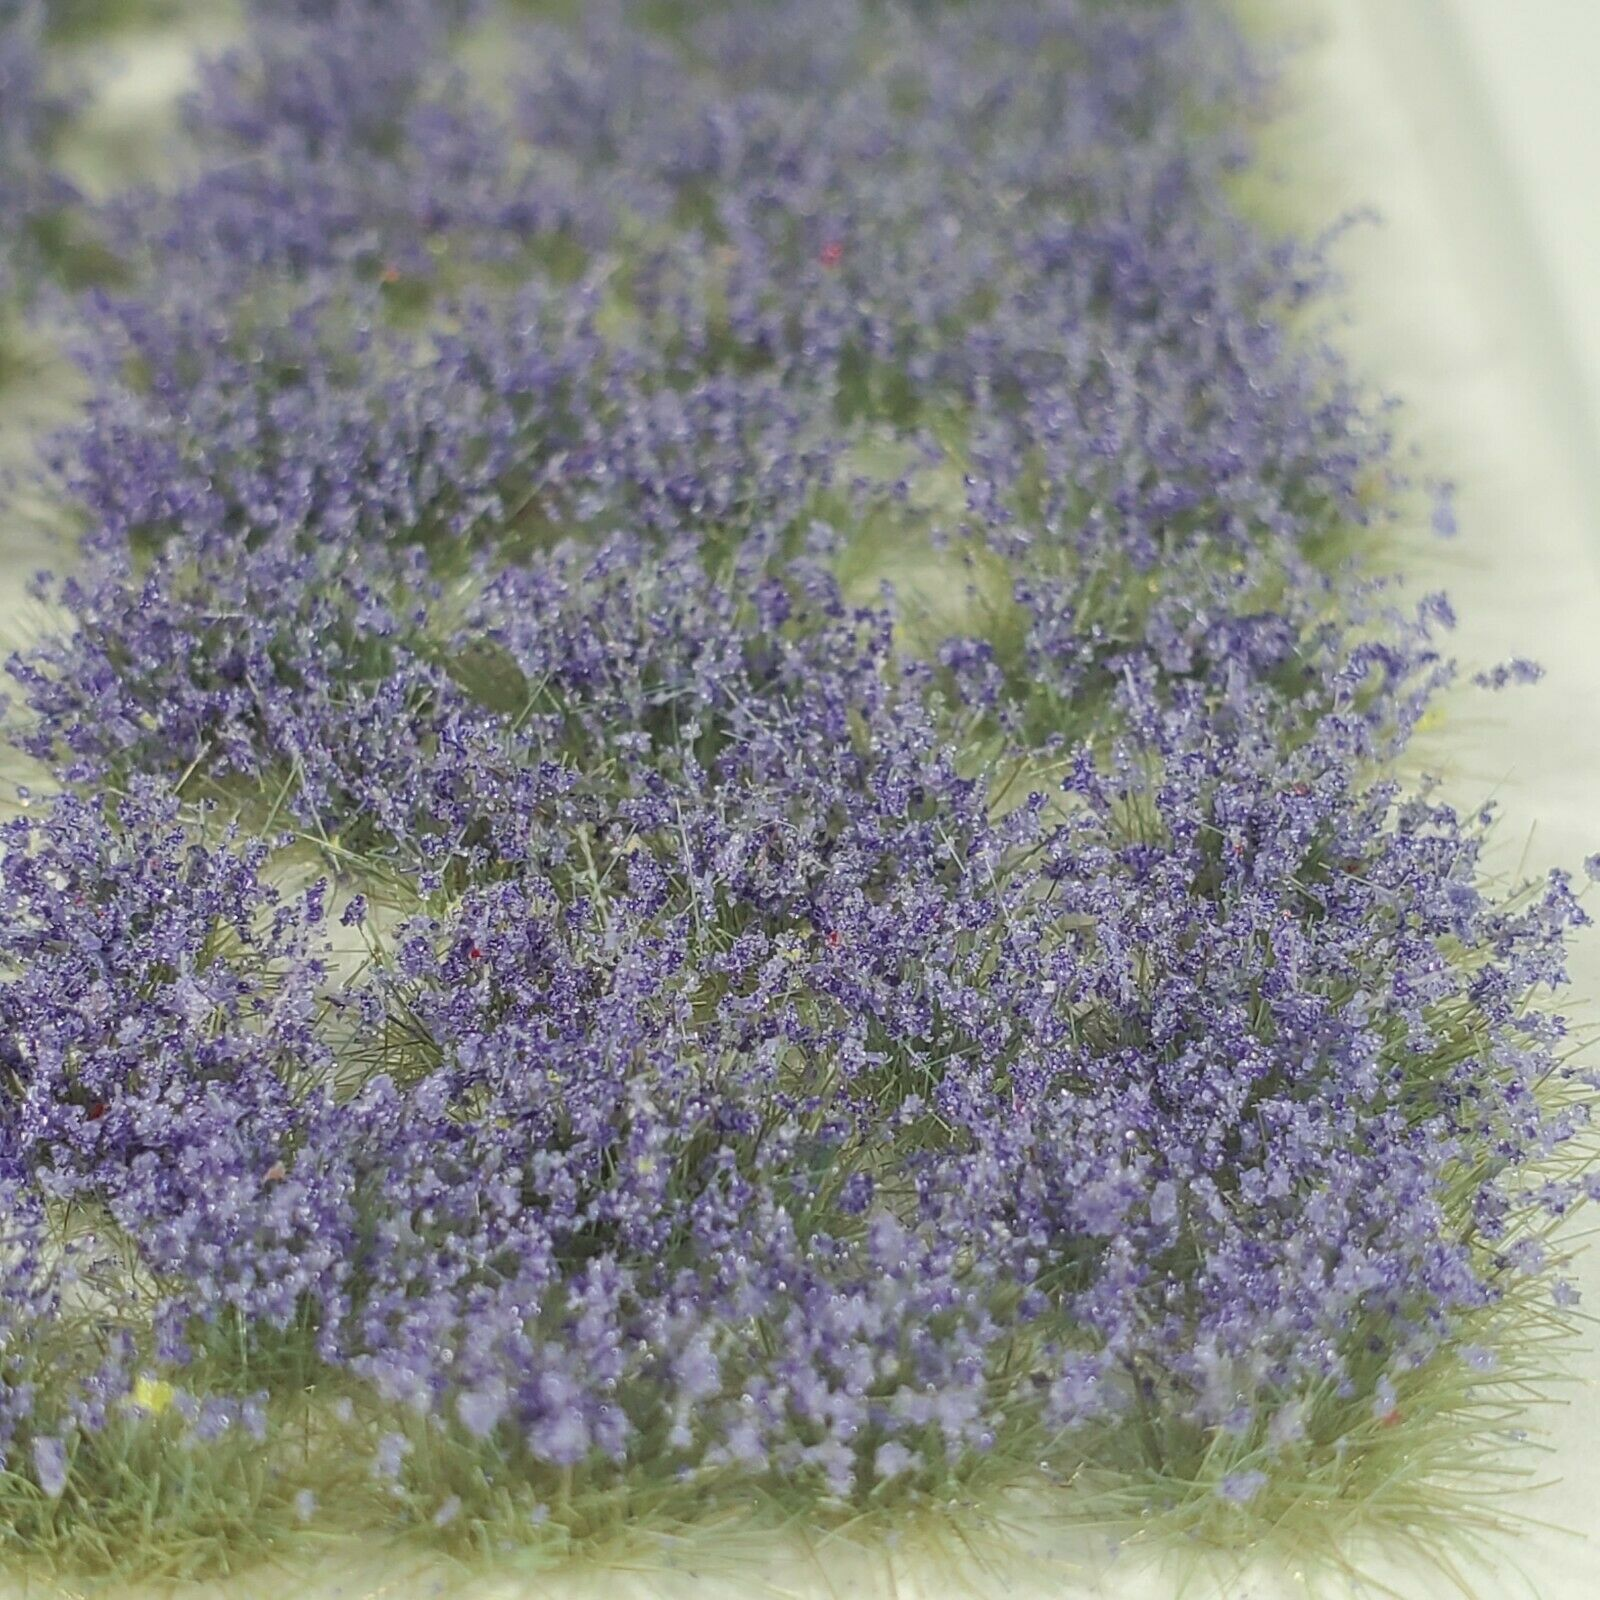 Self Adhesive Static Grass Tufts for Miniature Scenery -Lavender Wildflowers-4mm